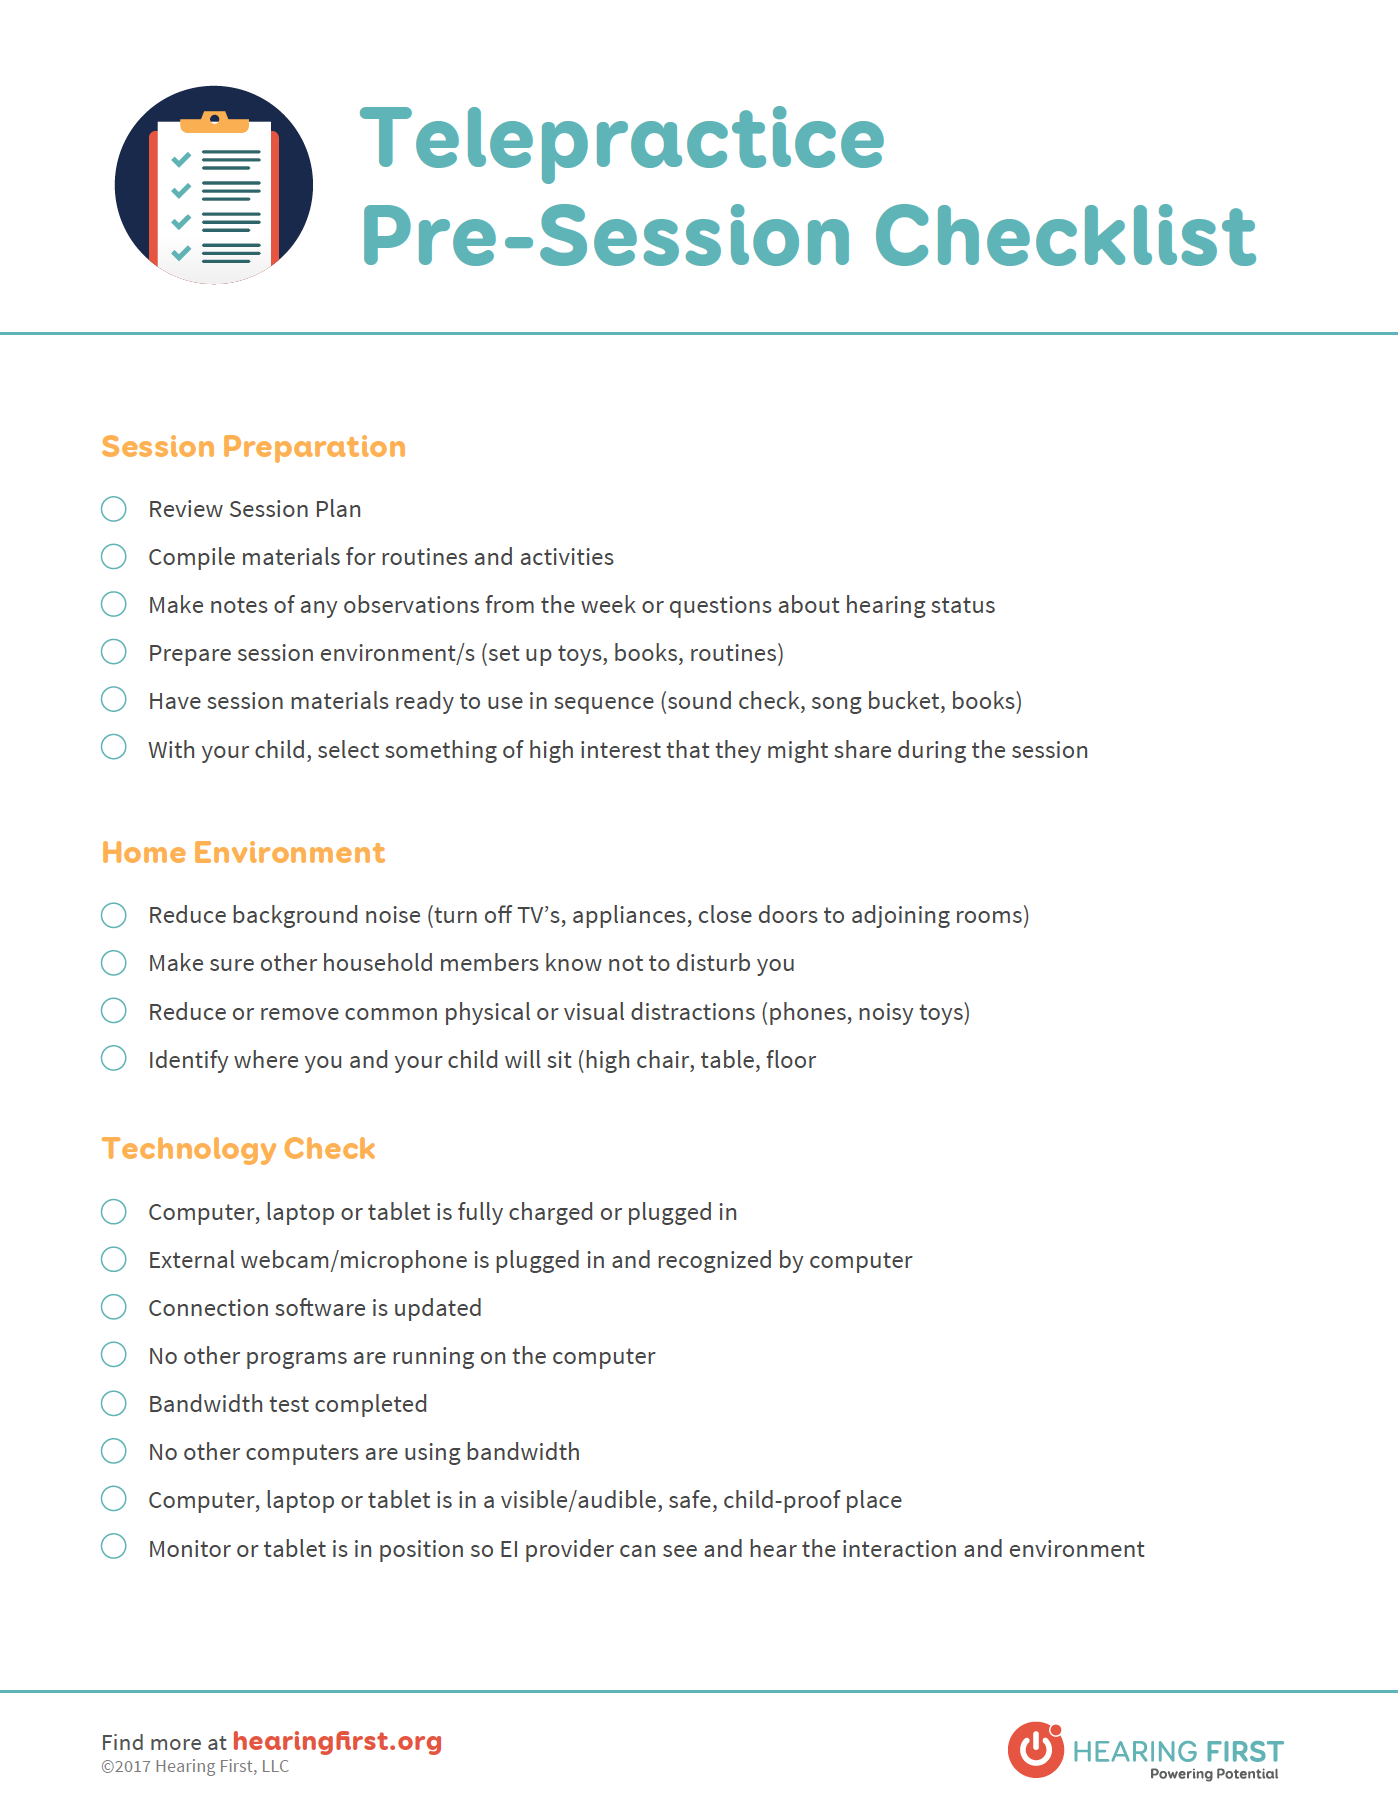 Preview of Telepractice Pre-Session Checklist PDF